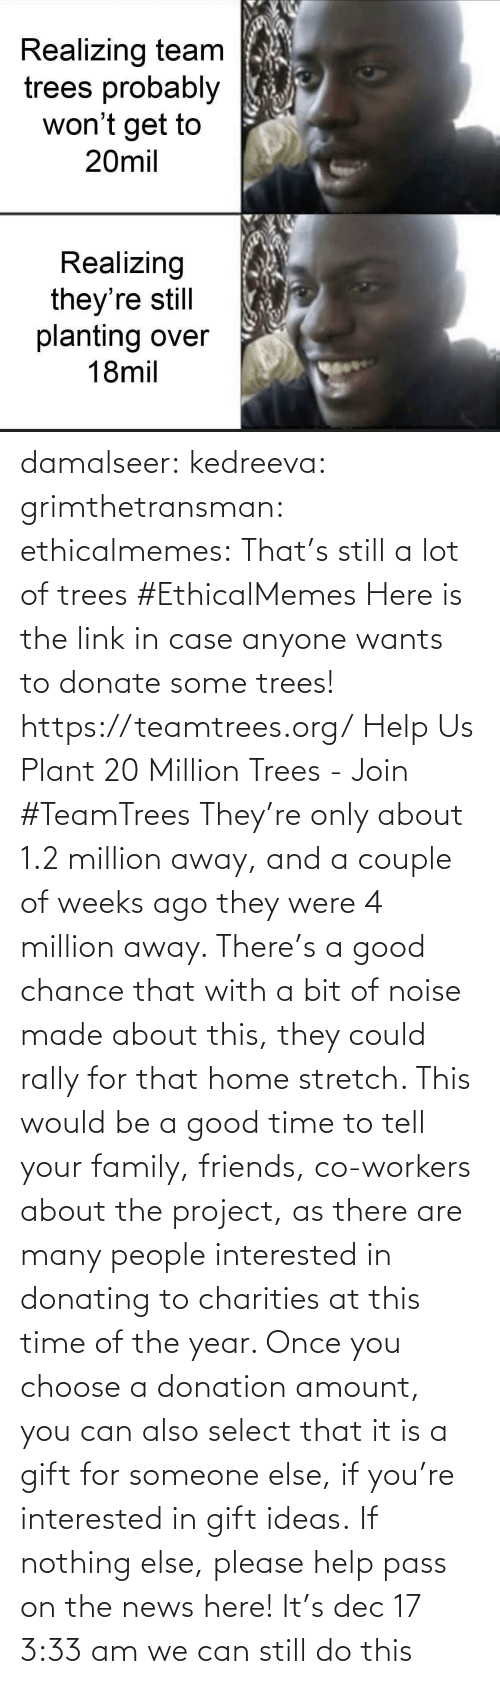 stretch: Realizing team  trees probably  won't get to  20mil  Realizing  they're still  planting over  18mil damalseer:  kedreeva: grimthetransman:  ethicalmemes:  That's still a lot of trees #EthicalMemes   Here is the link in case anyone wants to donate some trees!  https://teamtrees.org/ Help Us Plant 20 Million Trees - Join #TeamTrees  They're only about 1.2 million away, and a couple of weeks ago they were 4 million away. There's a good chance that with a bit of noise made about this, they could rally for that home stretch. This would be a good time to tell your family, friends, co-workers about the project, as there are many people interested in donating to charities at this time of the year. Once you choose a donation amount, you can also select that it is a gift for someone else, if you're interested in gift ideas. If nothing else, please help pass on the news here!    It's dec 17 3:33 am we can still do this